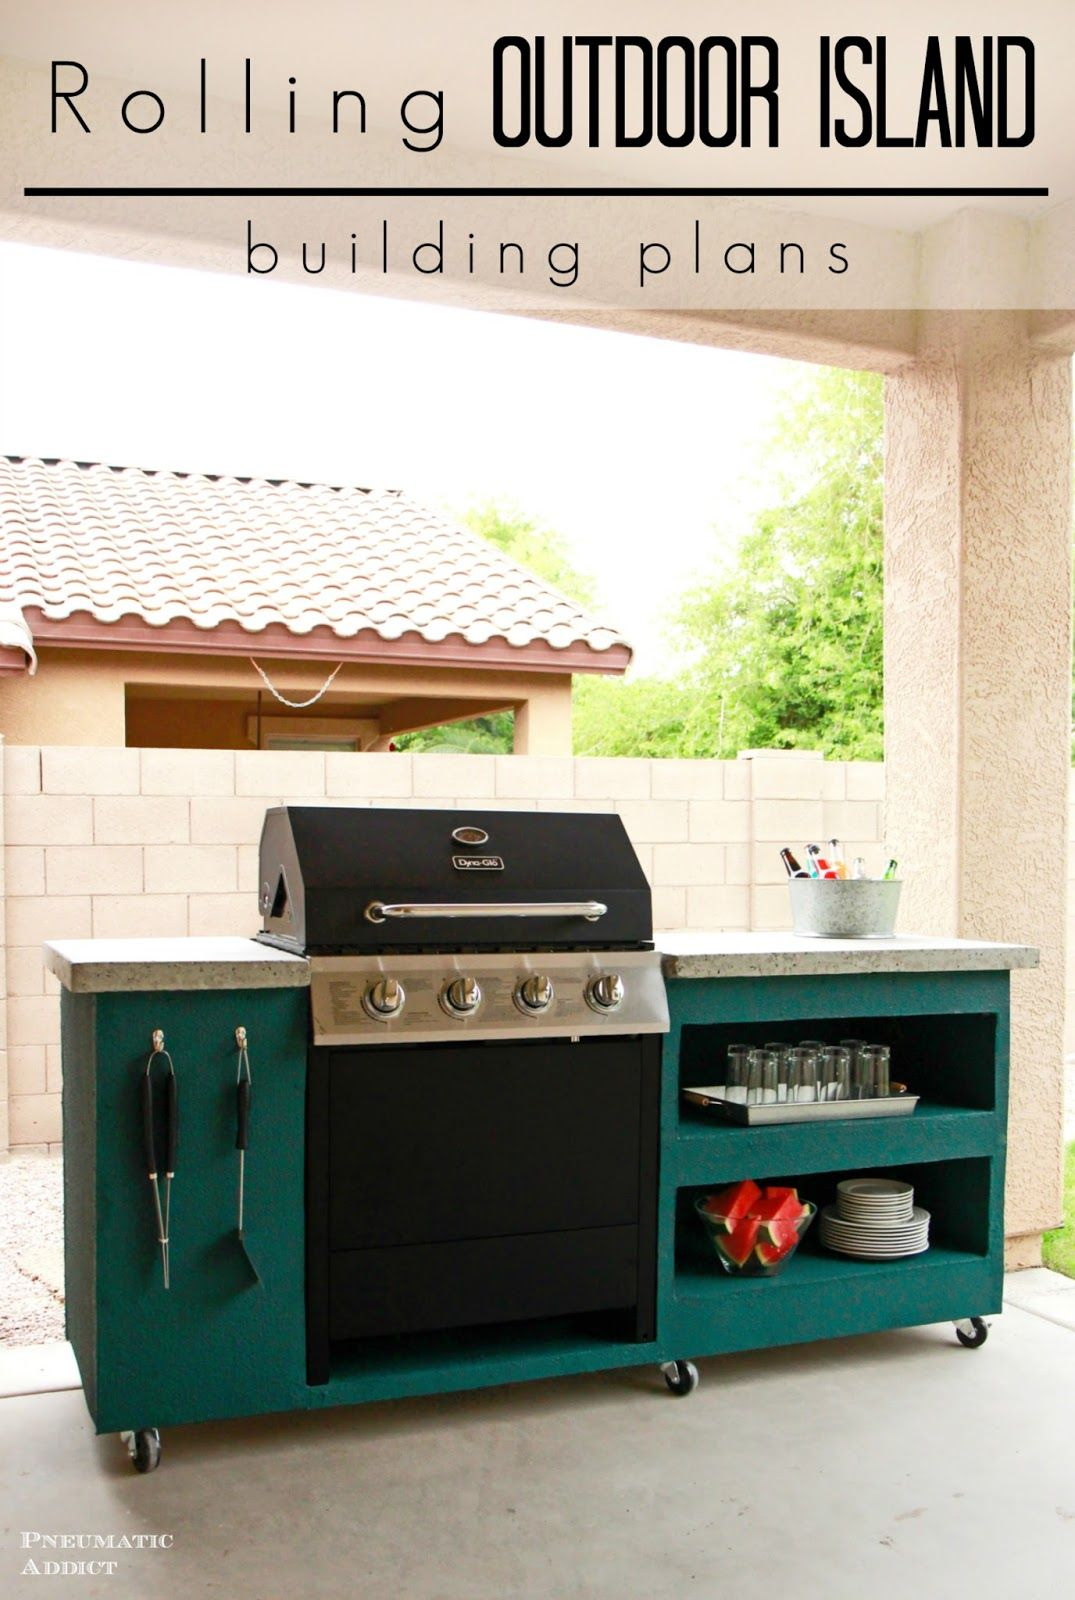 DIY Grill Station Ideas to Make Summer Parties More Fun